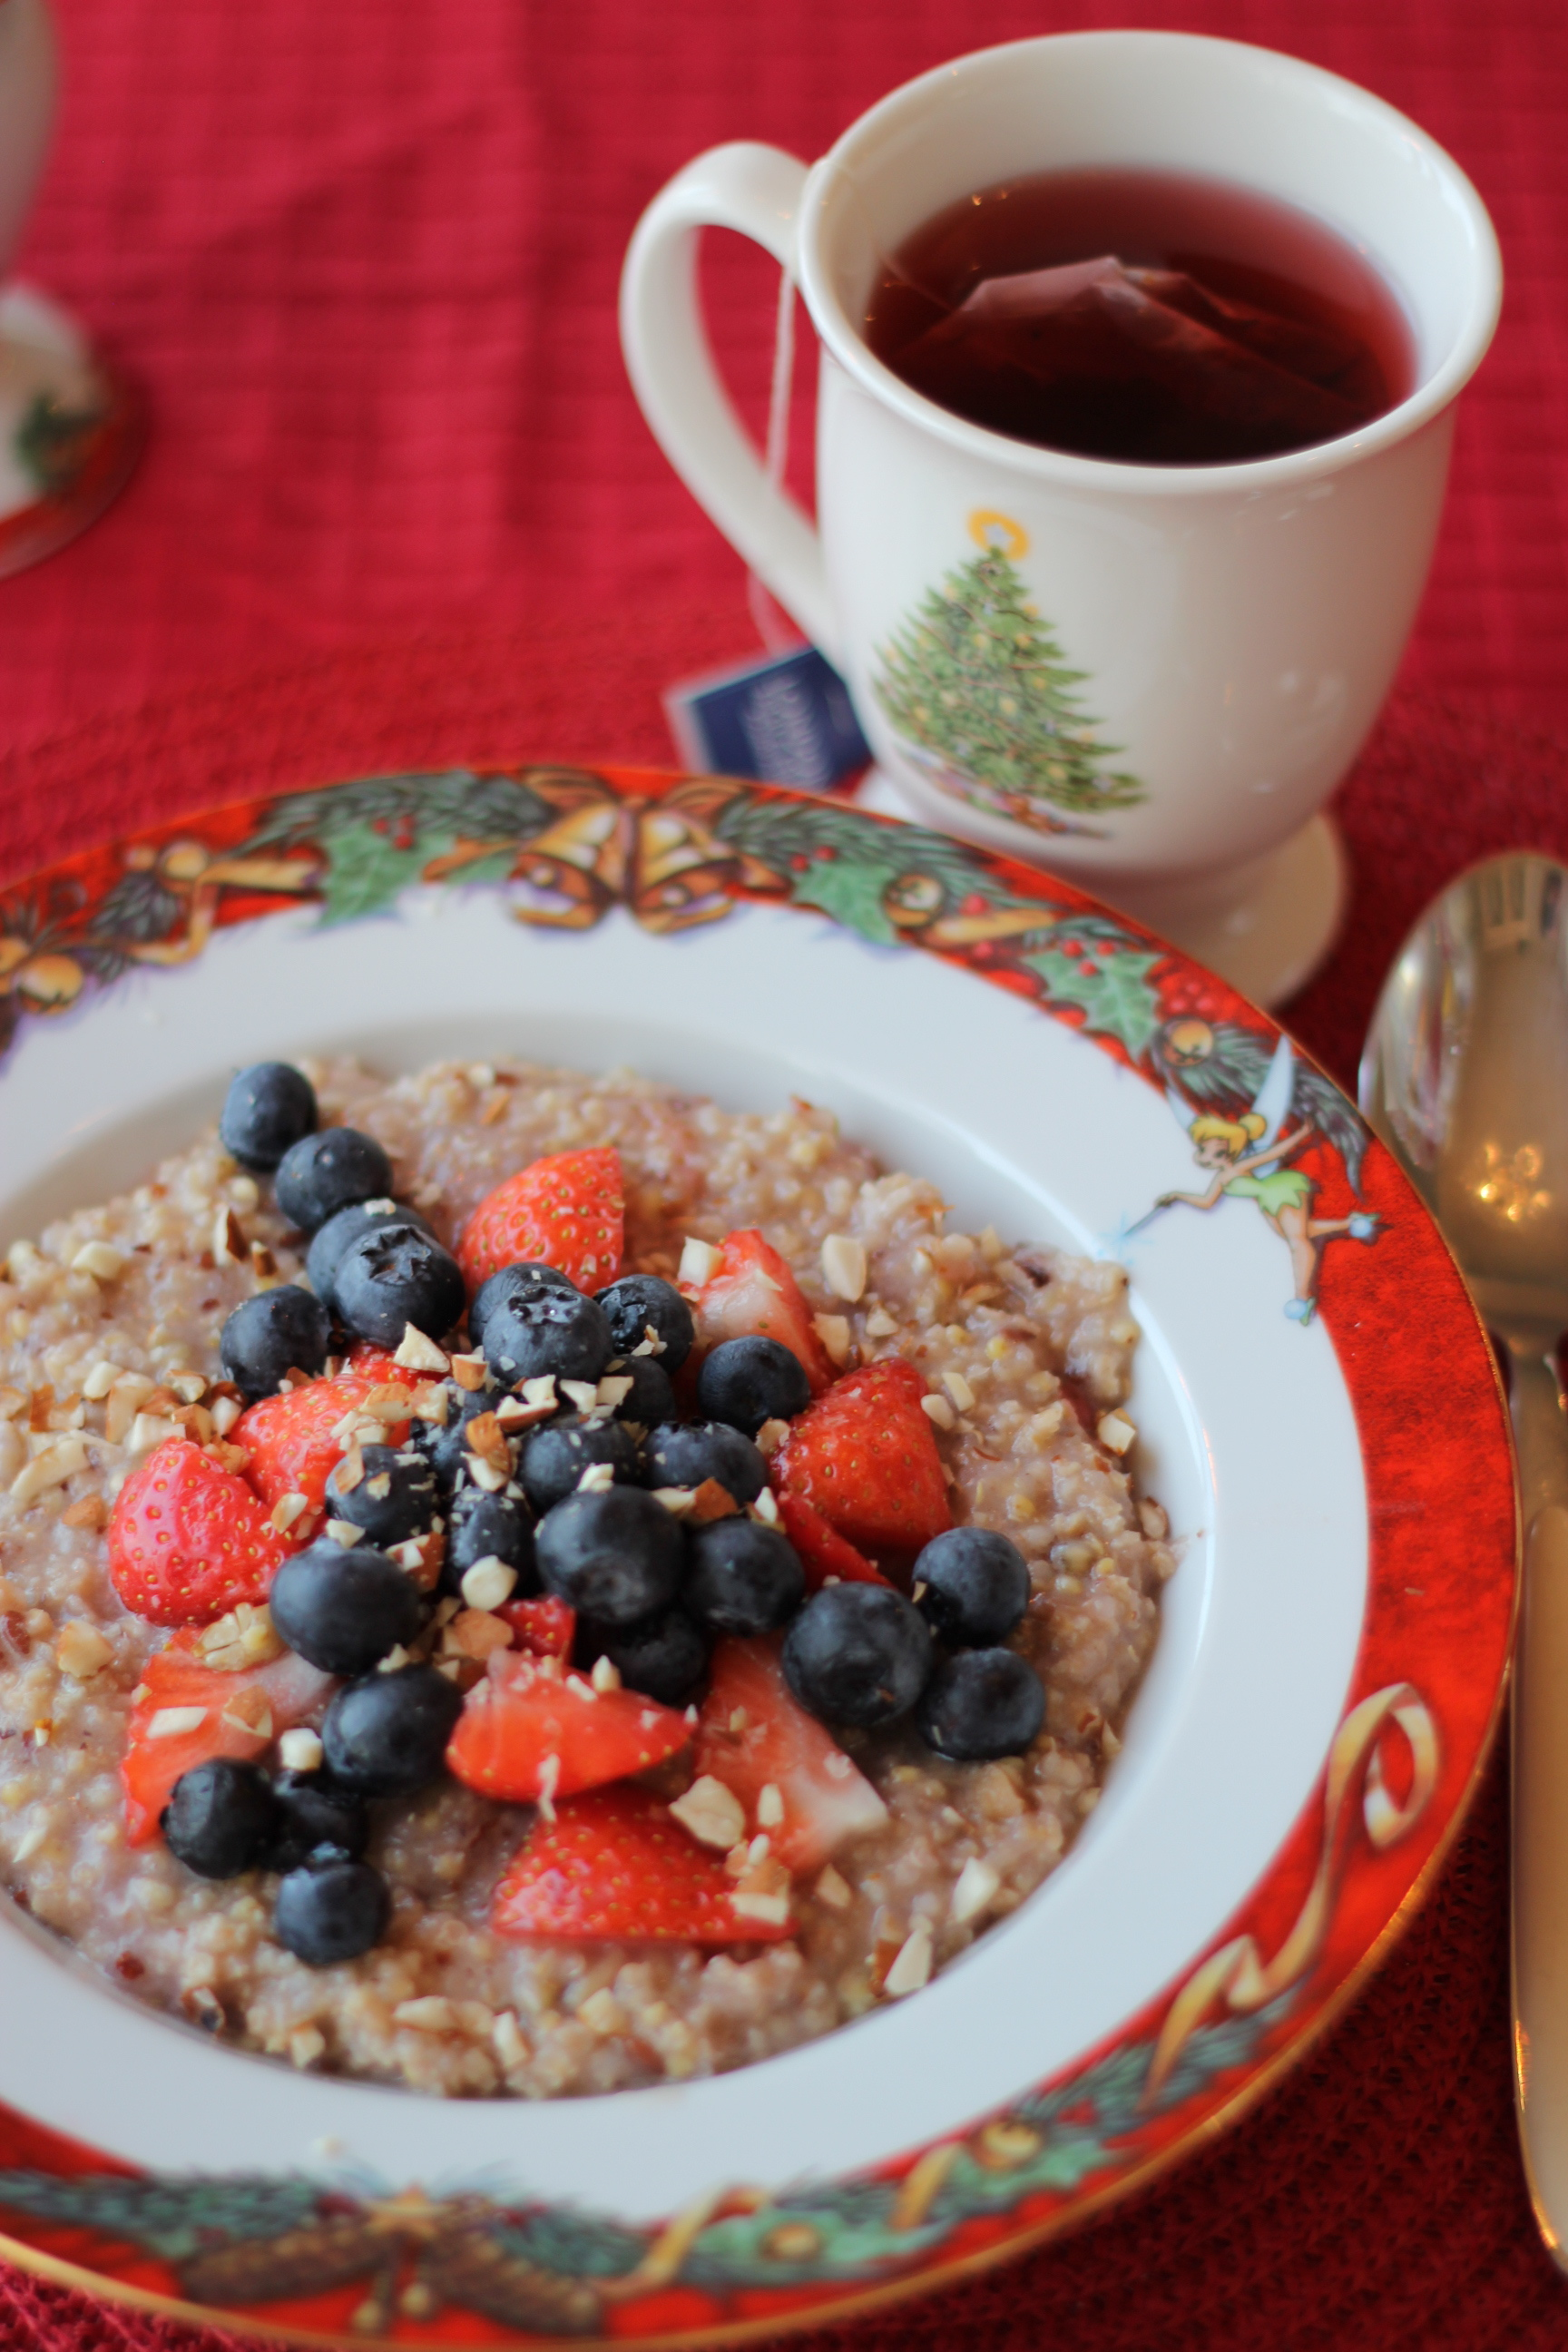 The porridge is gluten free, and filled with vitamin B